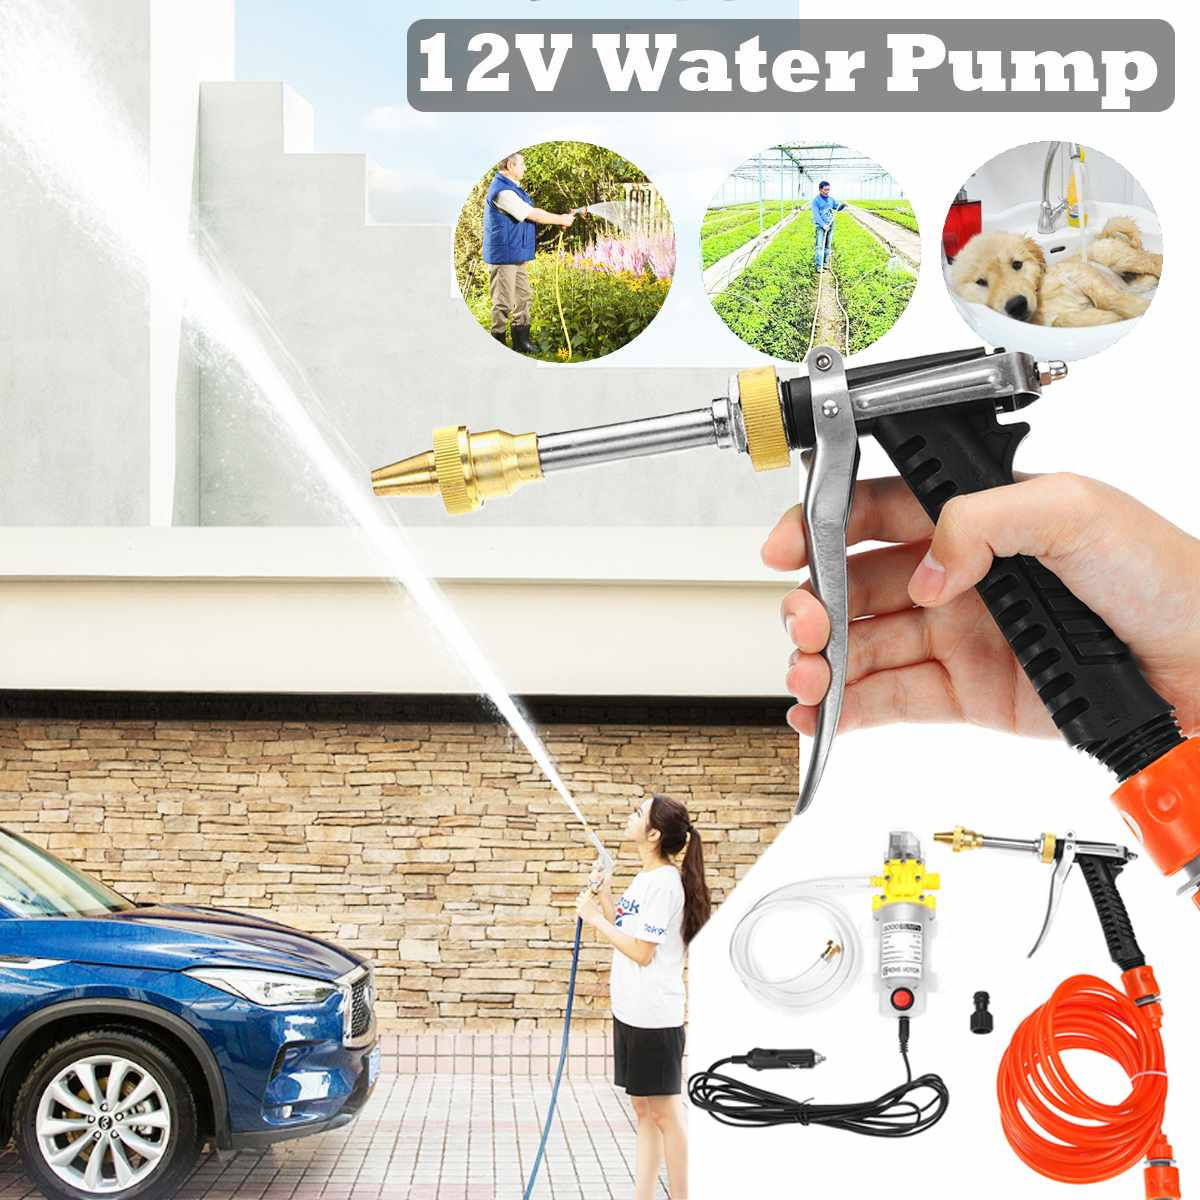 Wash-Pump-Set Auto-Washing-Machine-Kit Car-Cigarette-Lighter Electric-Washer Portable title=